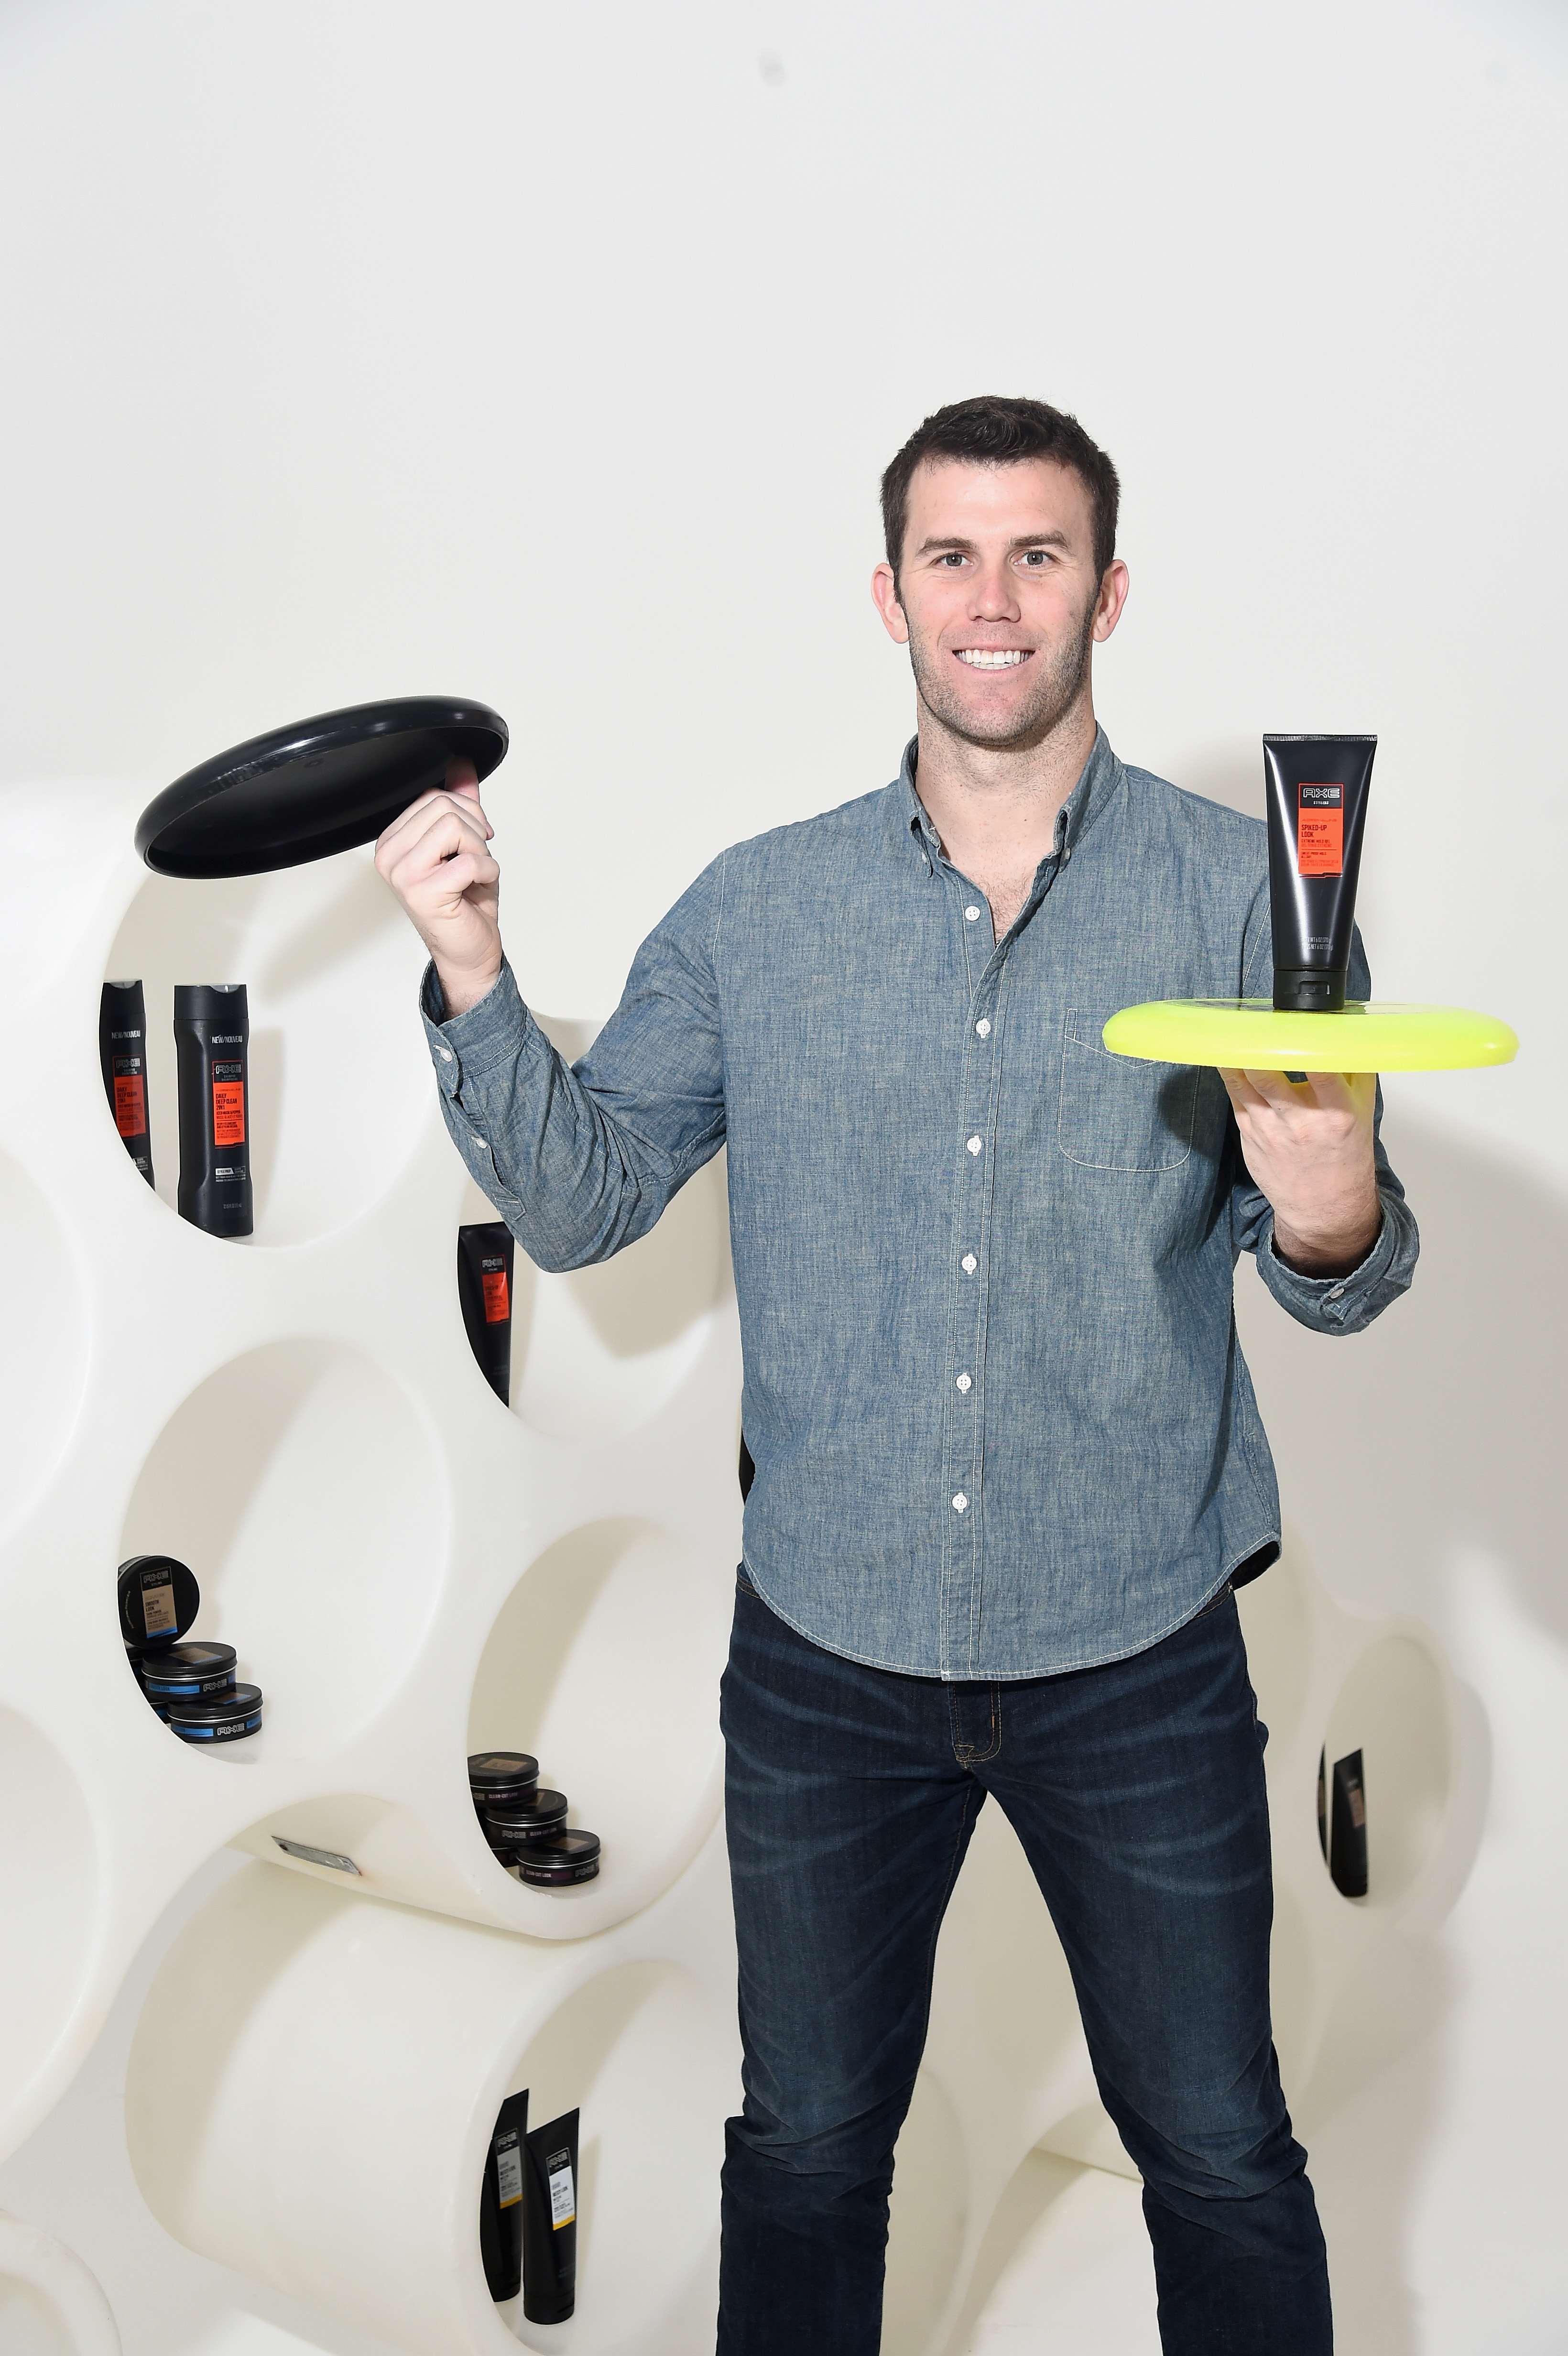 Brodie Smith Performs Frisbee Trick, Talks AXE Hair Creators, & Wanting To Collab With Tim Tebow